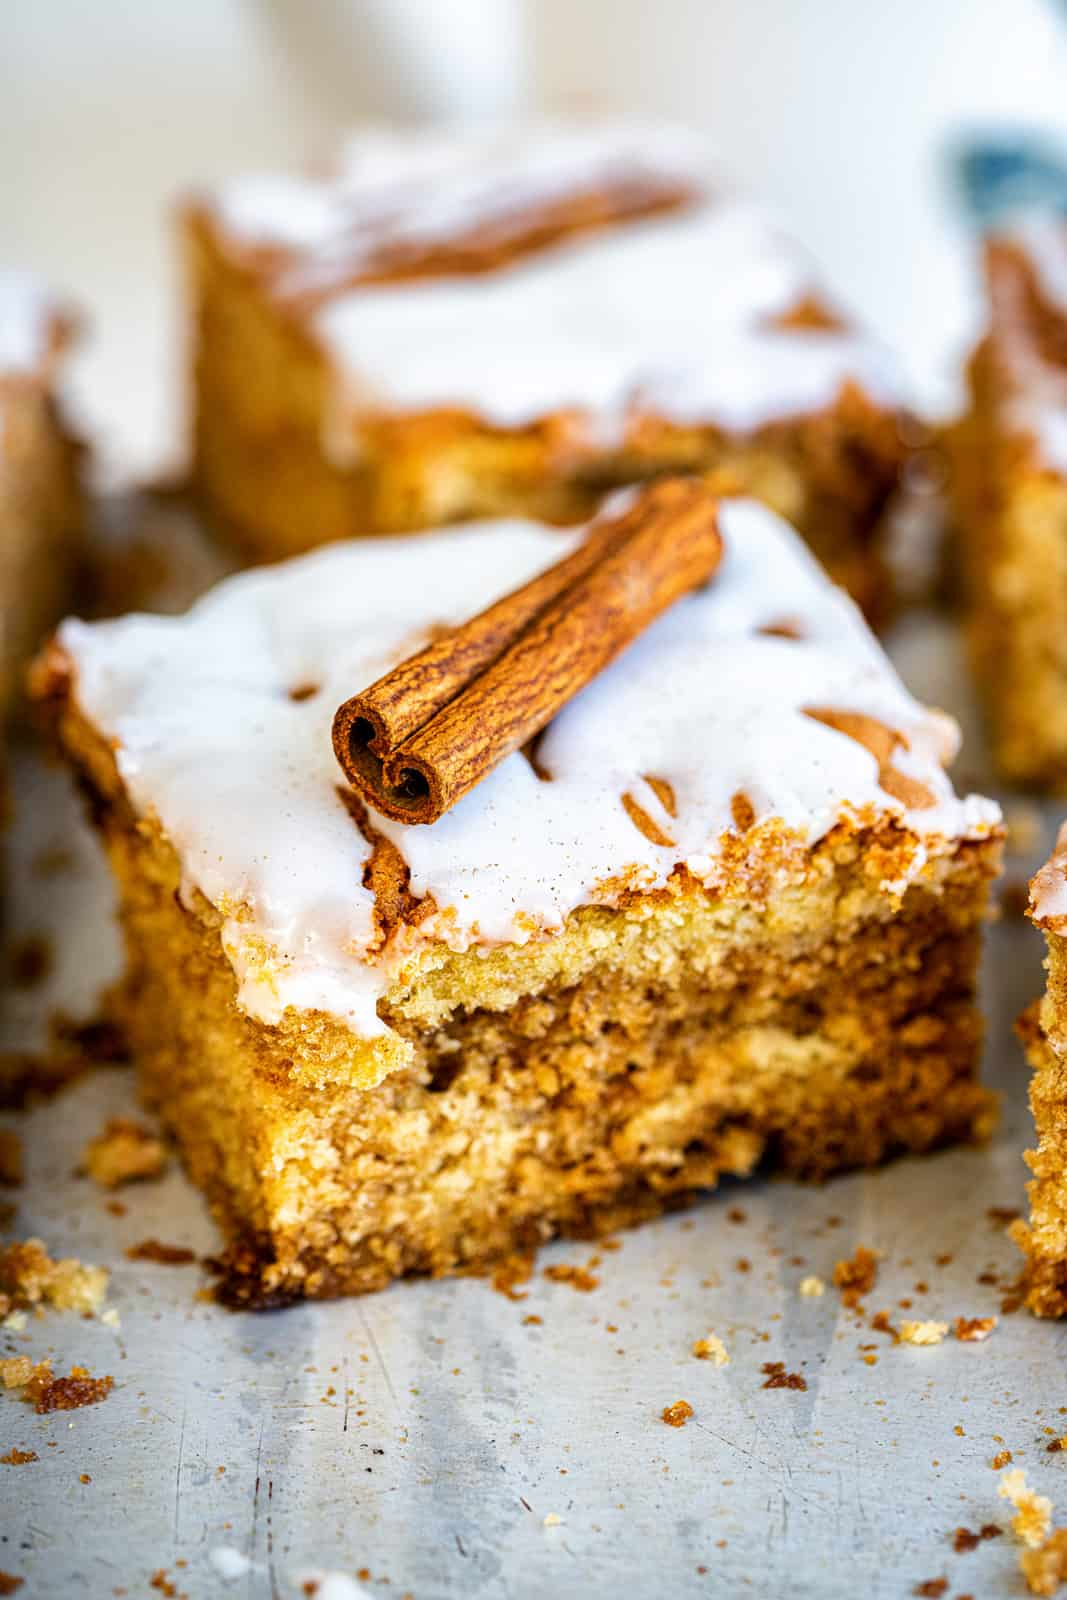 slice of cinnamon coffee cake decorated with cinnamon stick